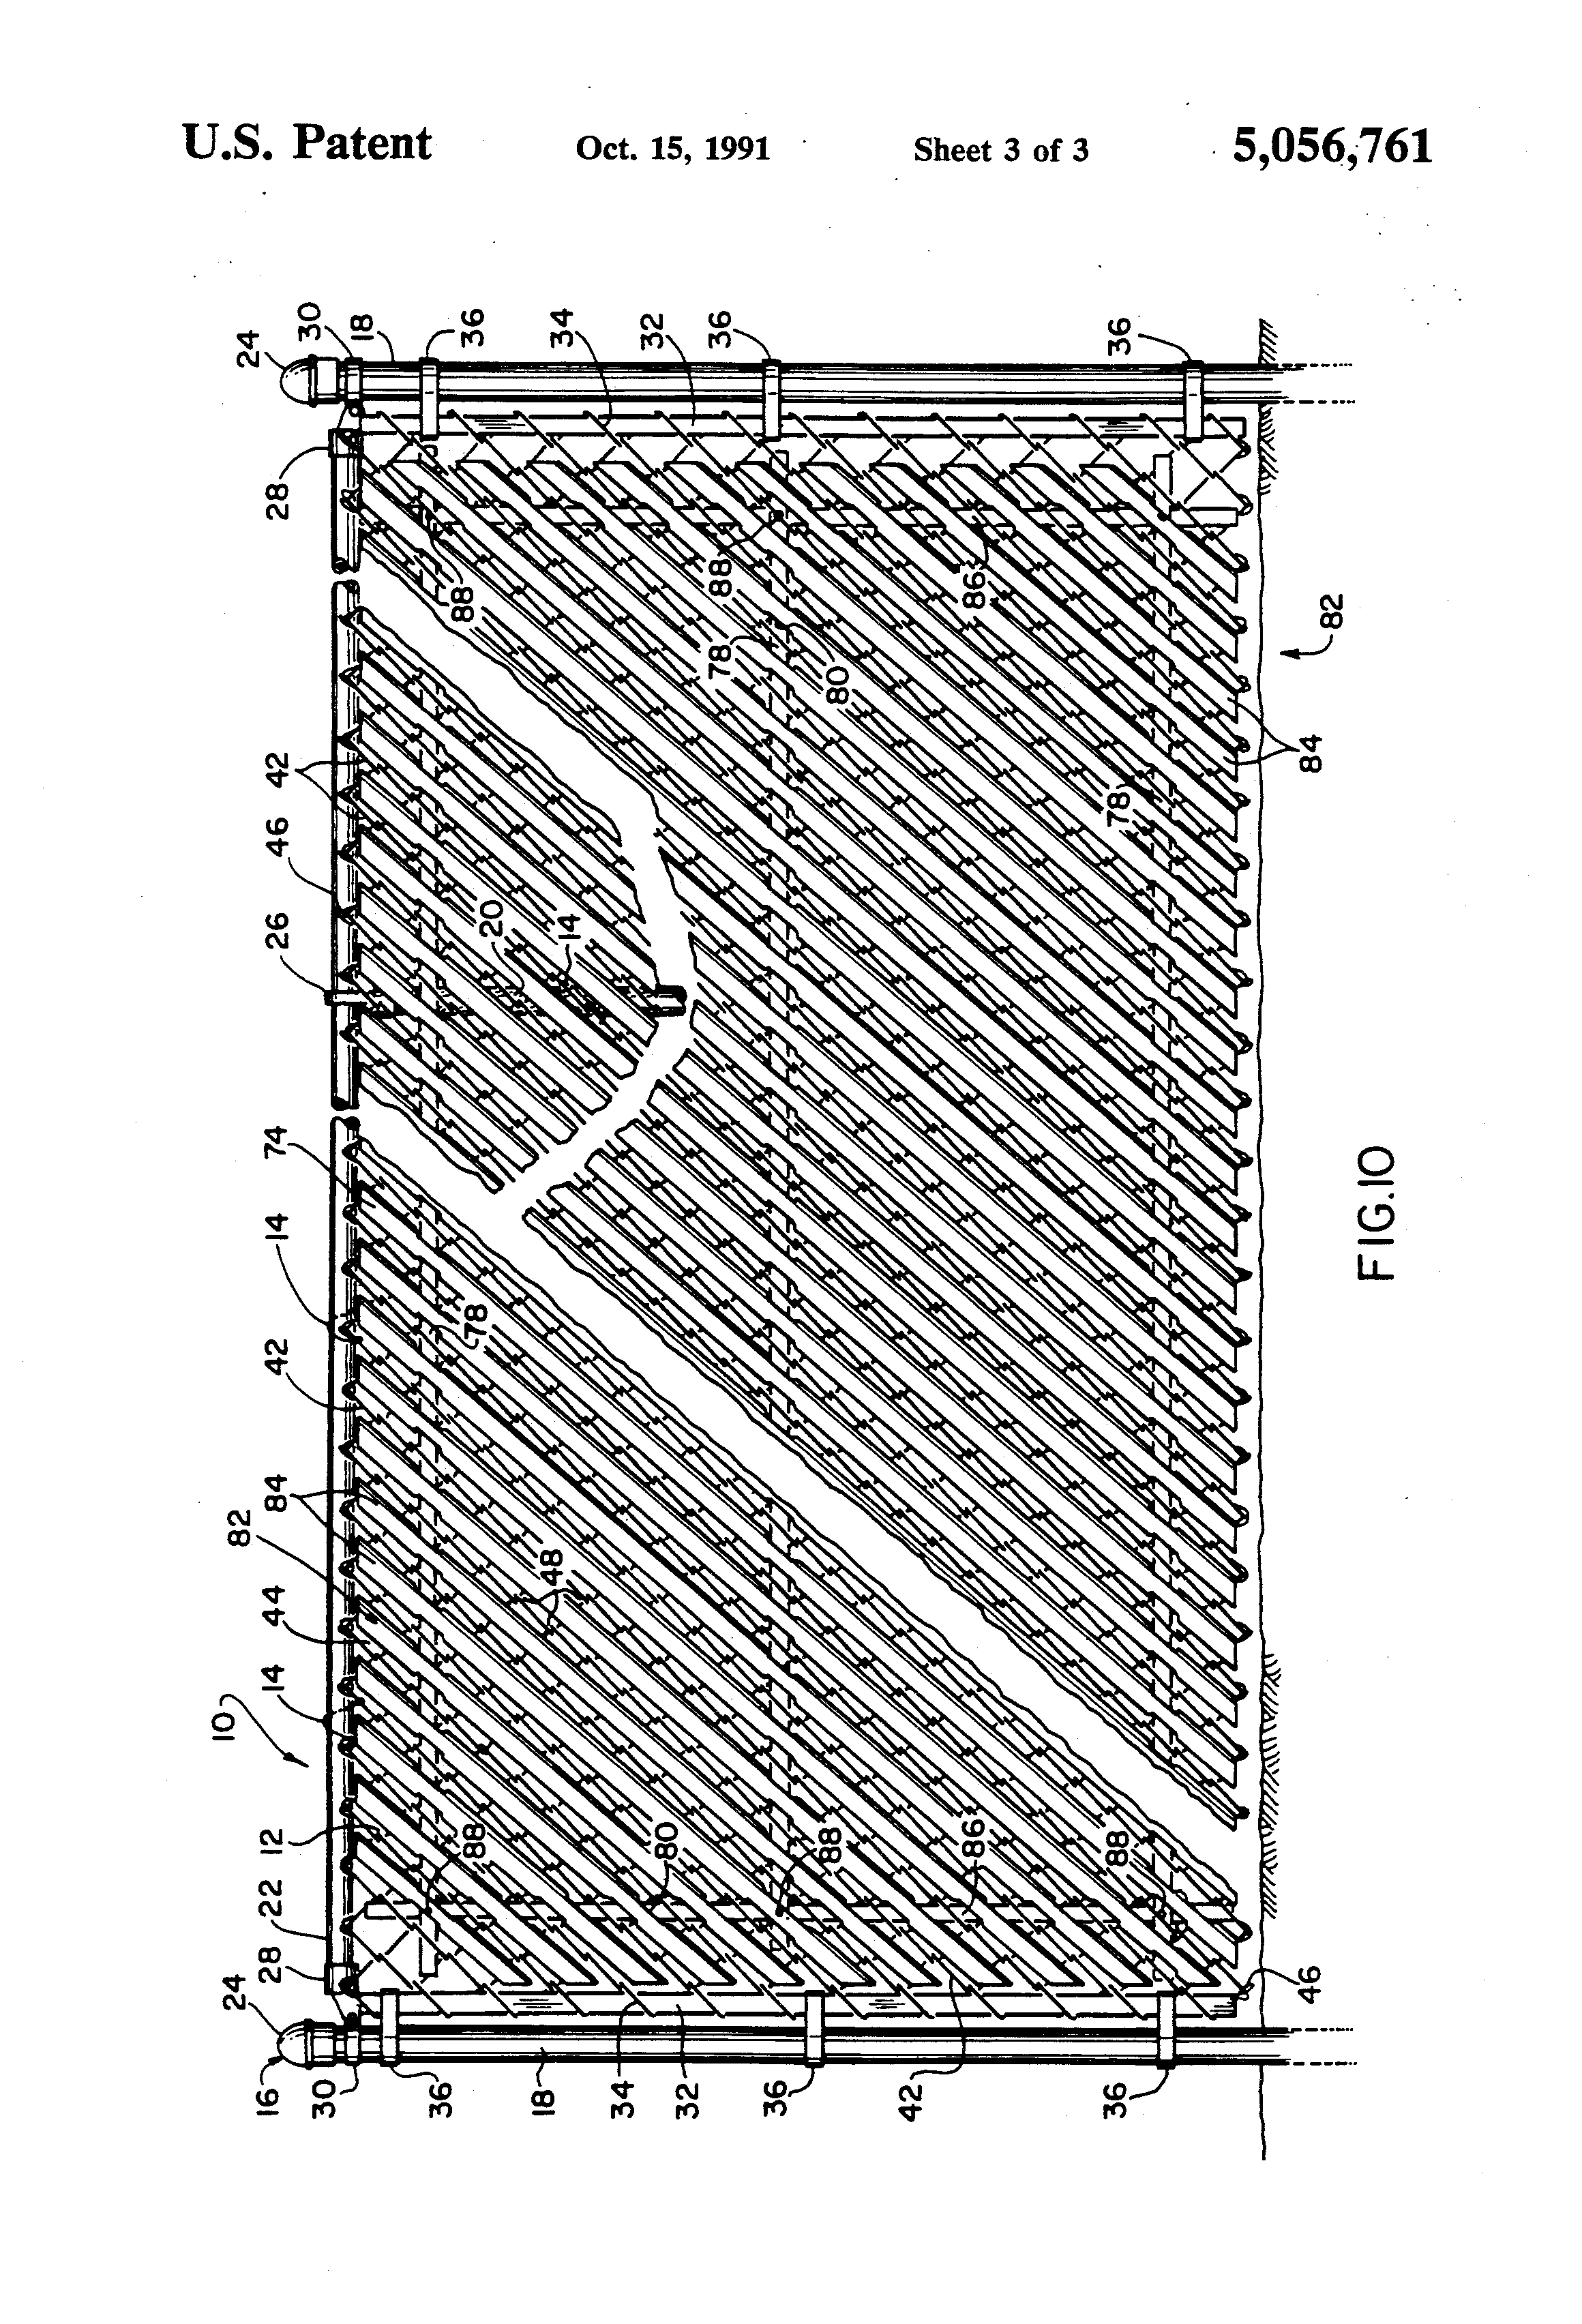 Chain Link Fence Drawing patent us5056761 - slat-retaining means for chain link fences